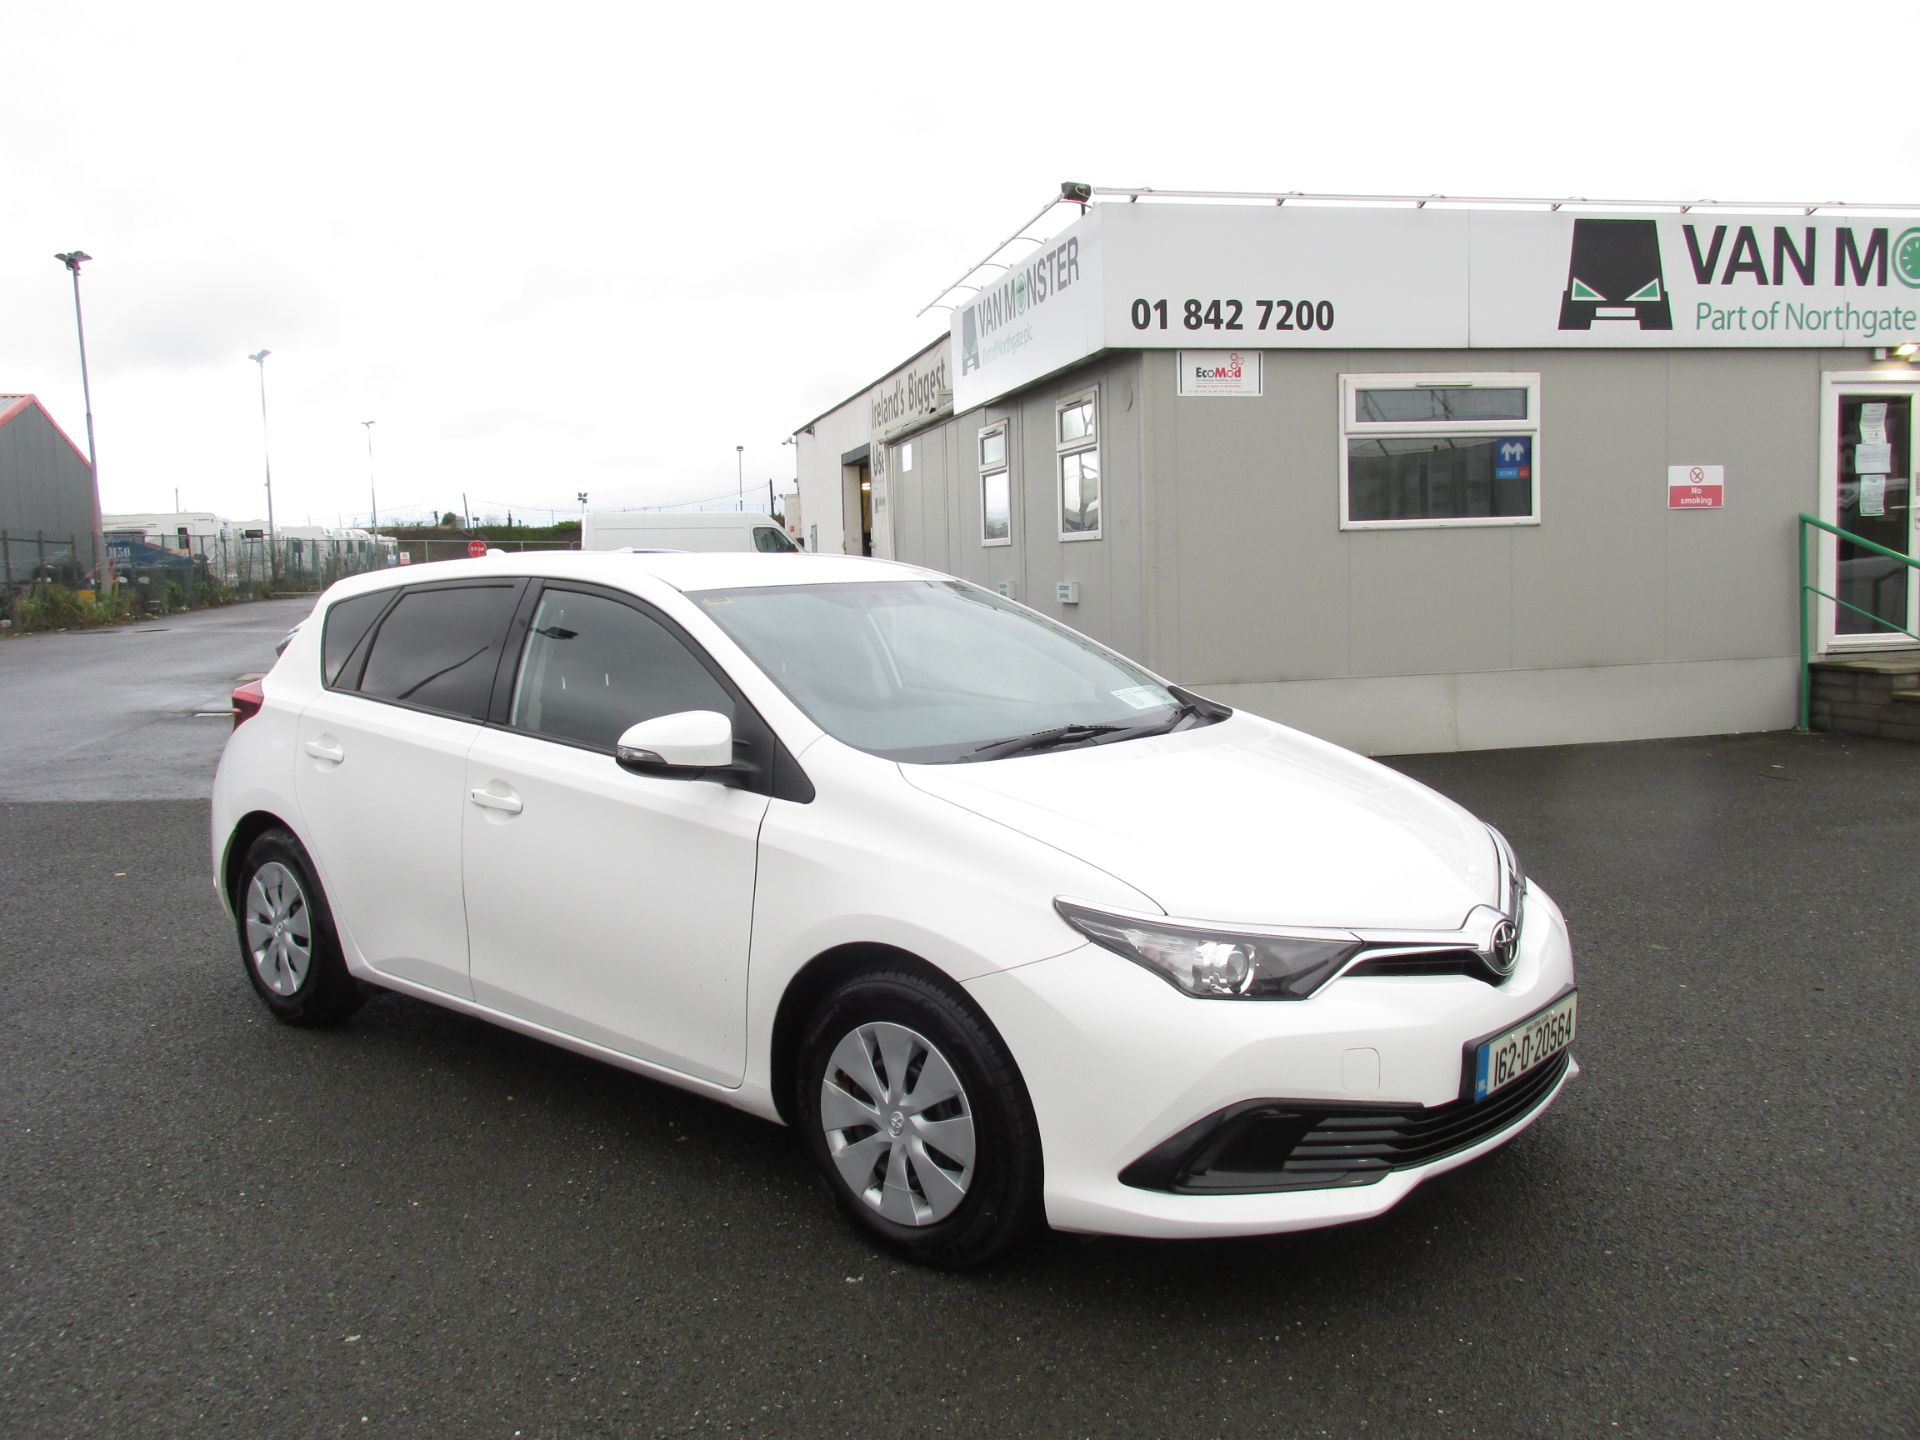 2016 Toyota Auris 1.4d-4d Terra 4DR click and deliver call sales for more info (162D20564)